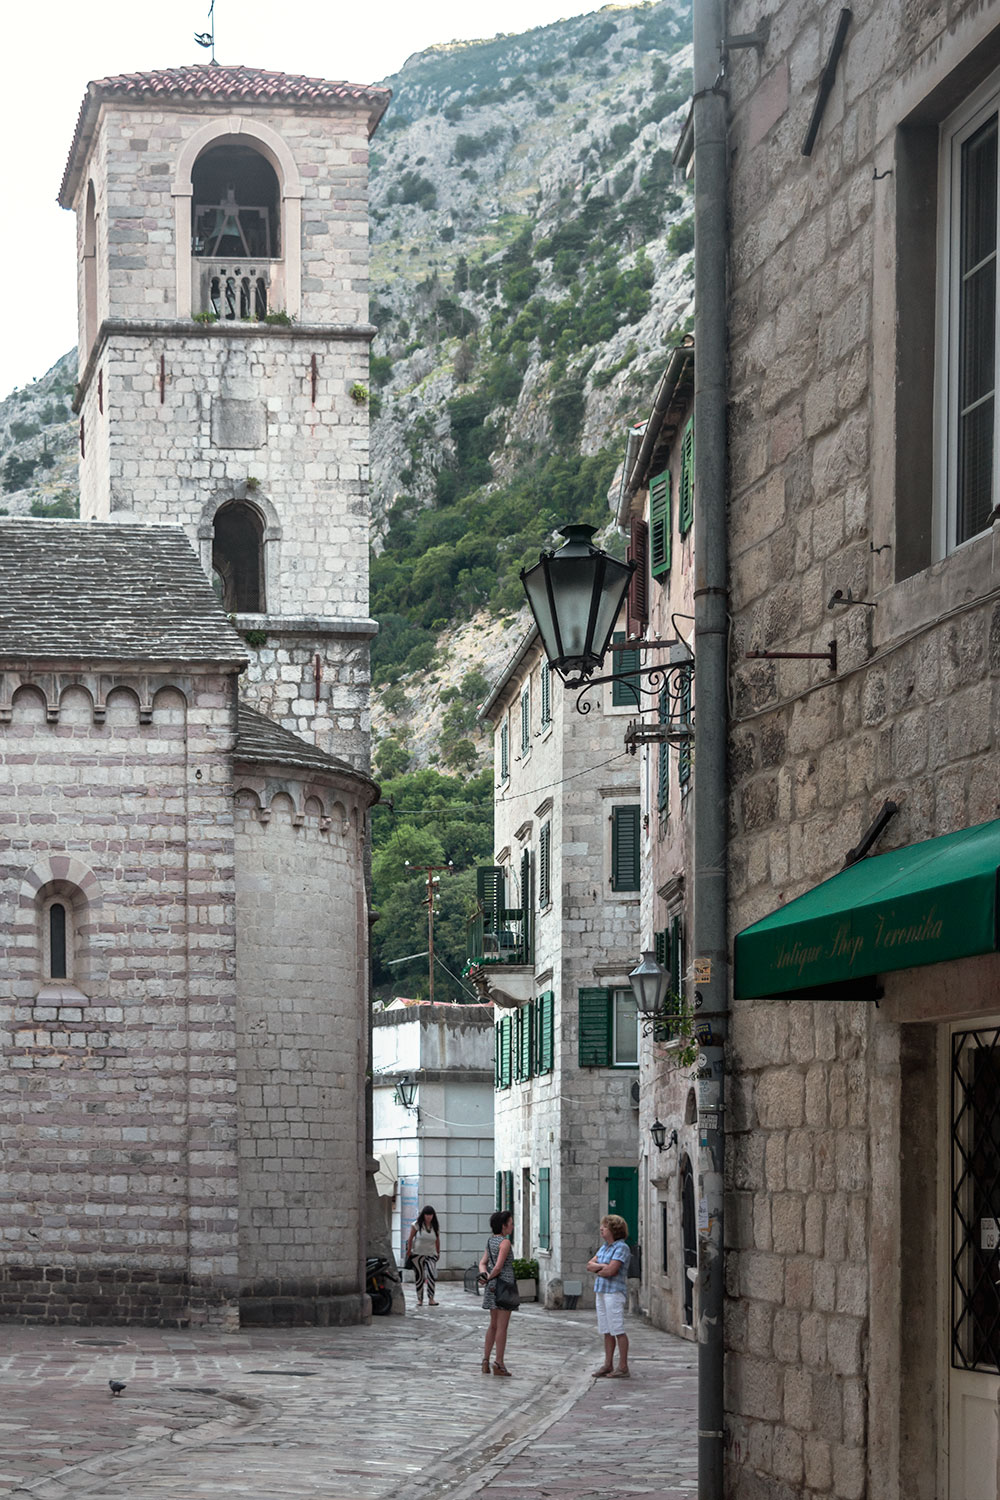 The streets of Kotor Old Town are very well preserved